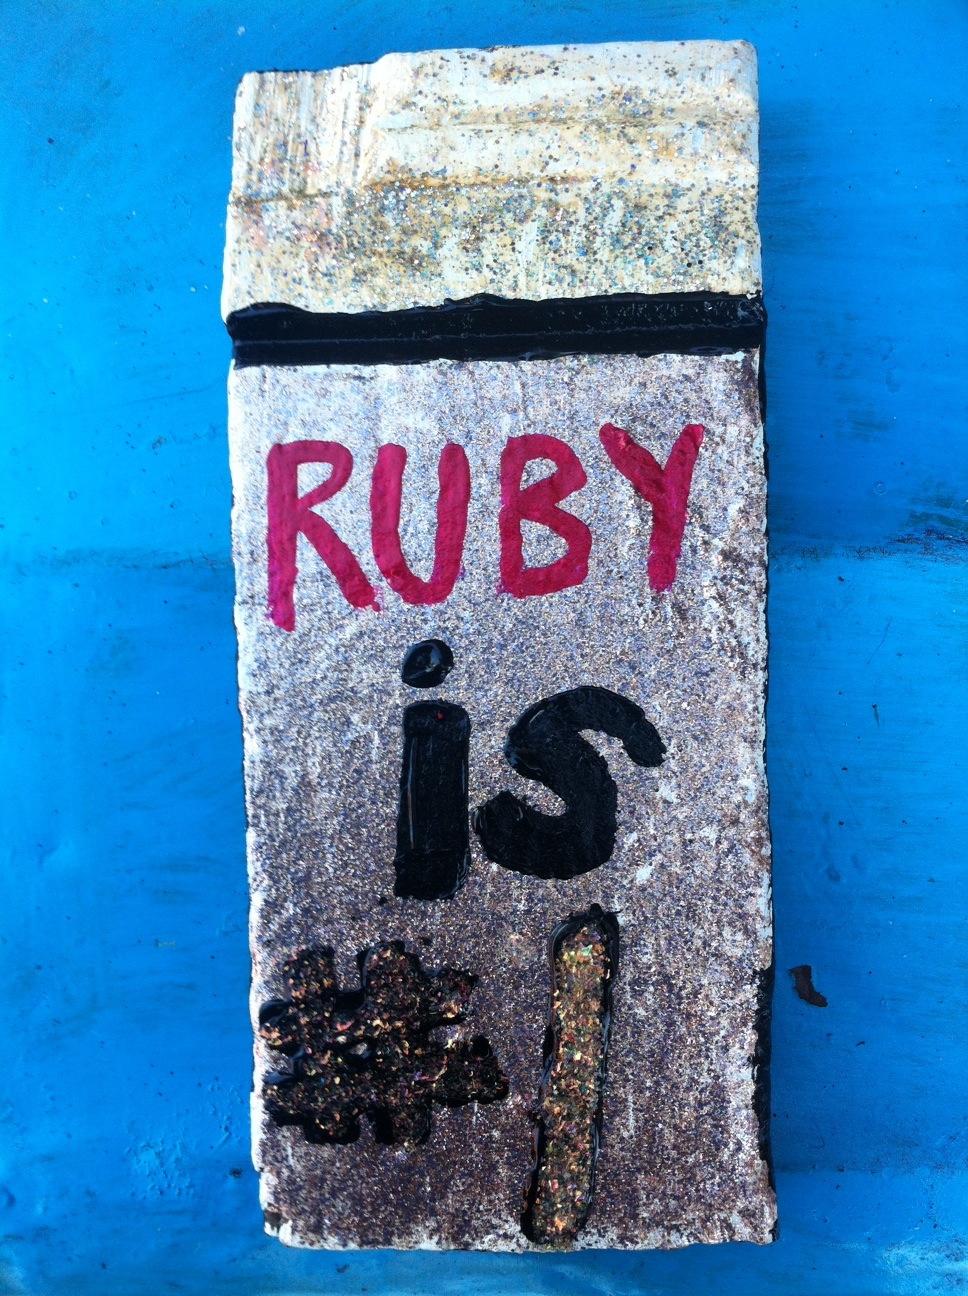 RUBY is #1 / December 16th, 2018 / 5 x 11 Acrylic Painting on Wood by Melanie Ree